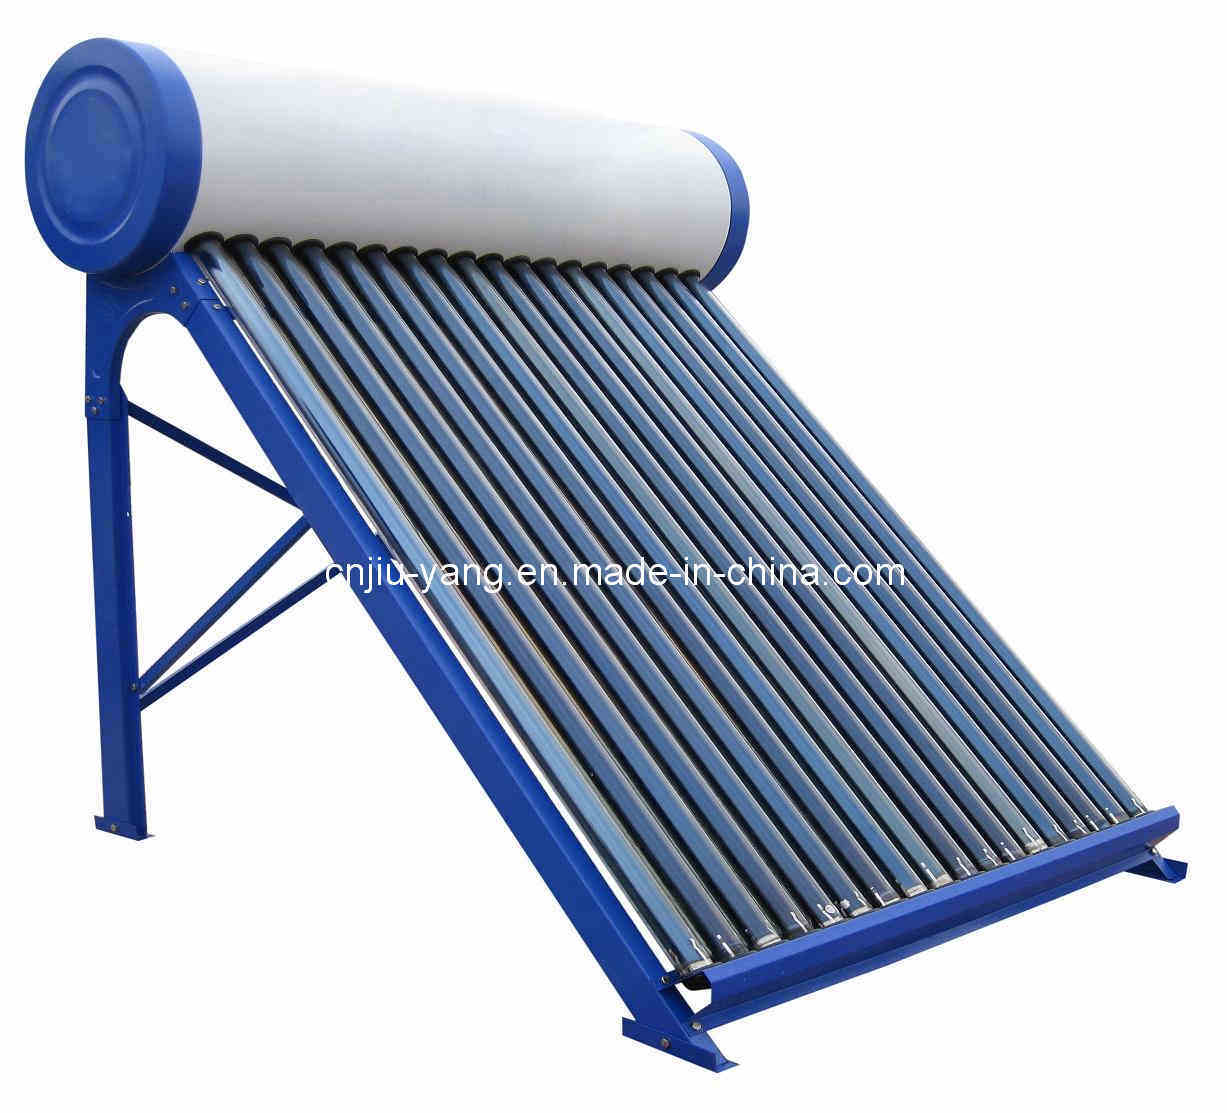 China Integrated Solar Water Heating Systems (JY-IP200) - China Solar ...